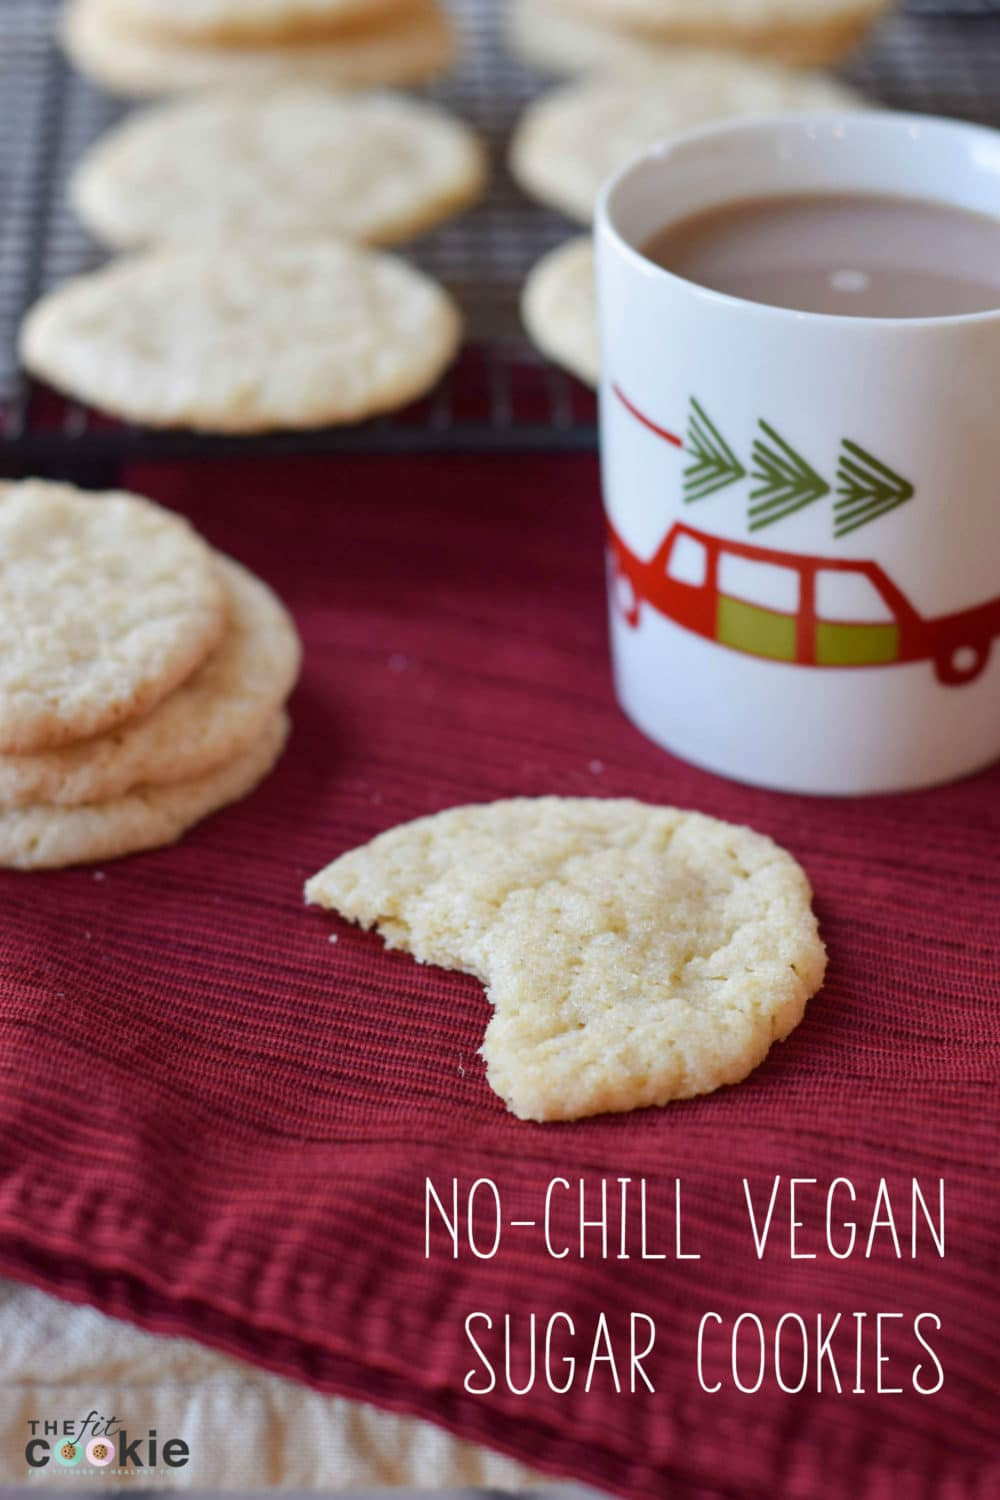 These No-Chill Vegan Sugar Cookies are the perfect treat for parties or school treats! They are easy to make (no more chilling dough!) and have no eggs, dairy, soy, tree nuts, peanuts, or coconut - @TheFitCookie #cookies #vegan #nutfree